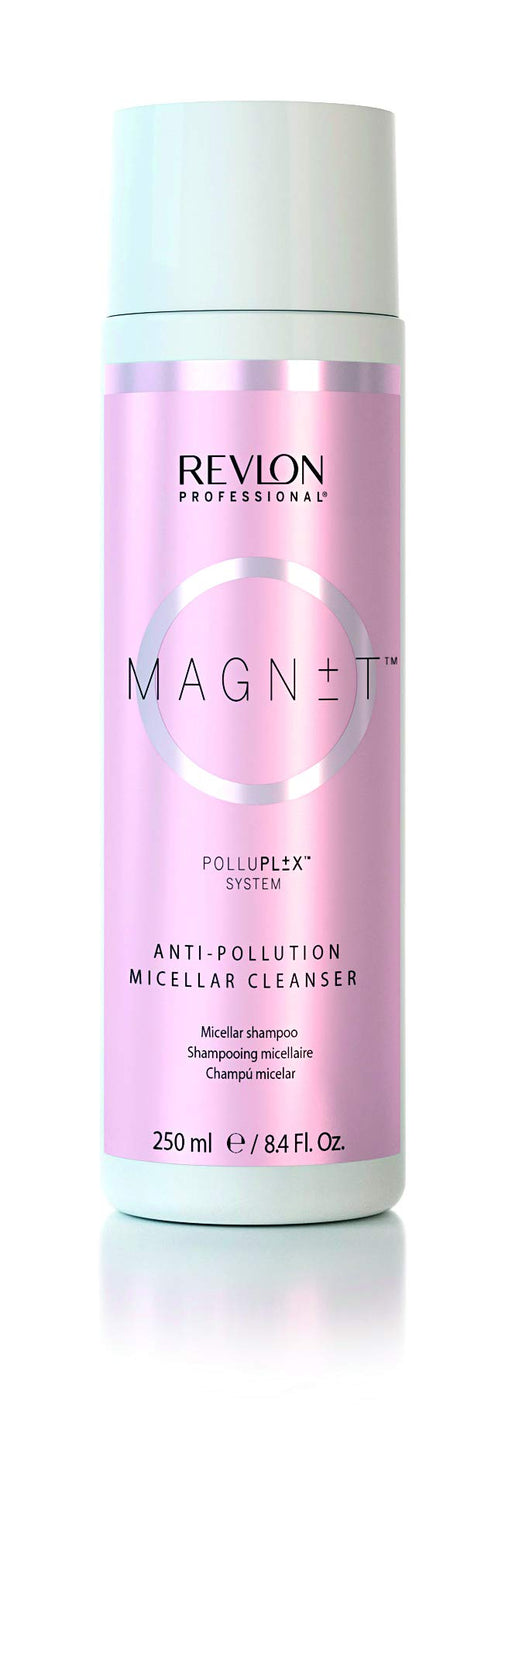 Revlon Magnet Anti-Pollution Micellar Cleanser- (250ml) - Beauty - Prohair